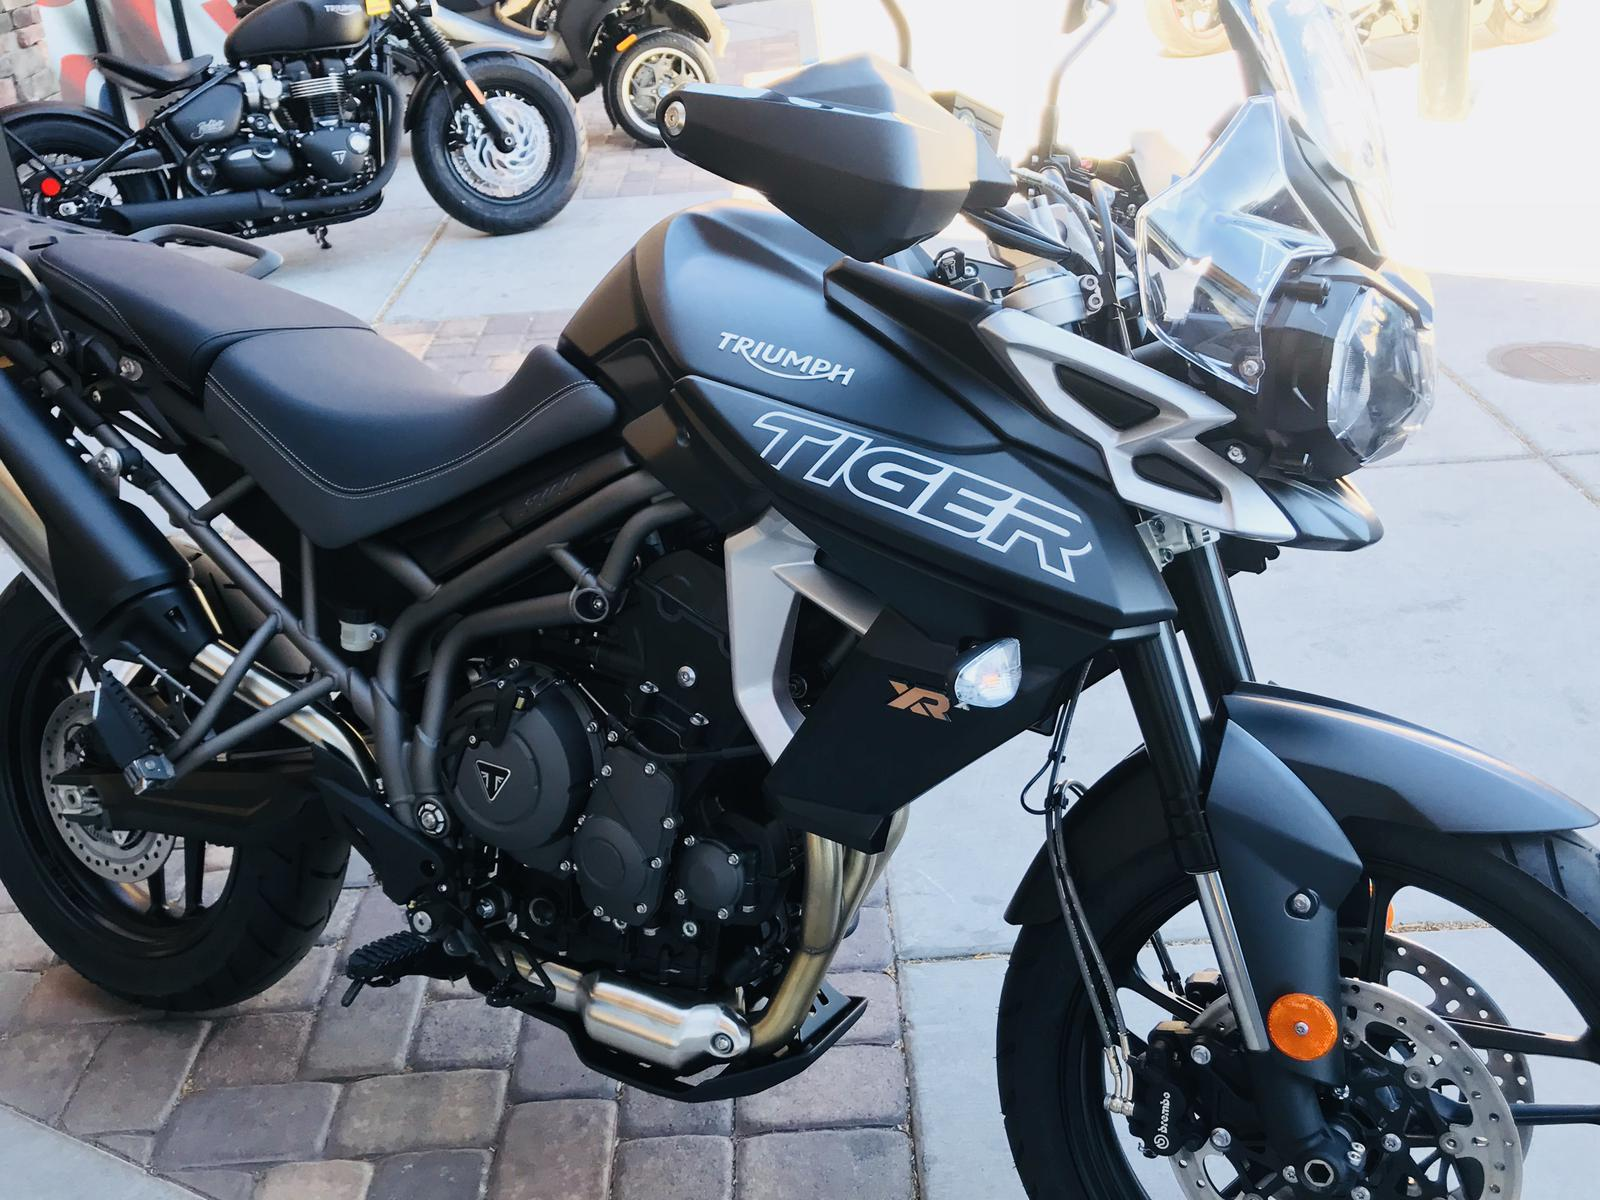 2018 Triumph Tiger 800 Xrx For Sale In Las Vegas Nv Freedom Euro Cycle